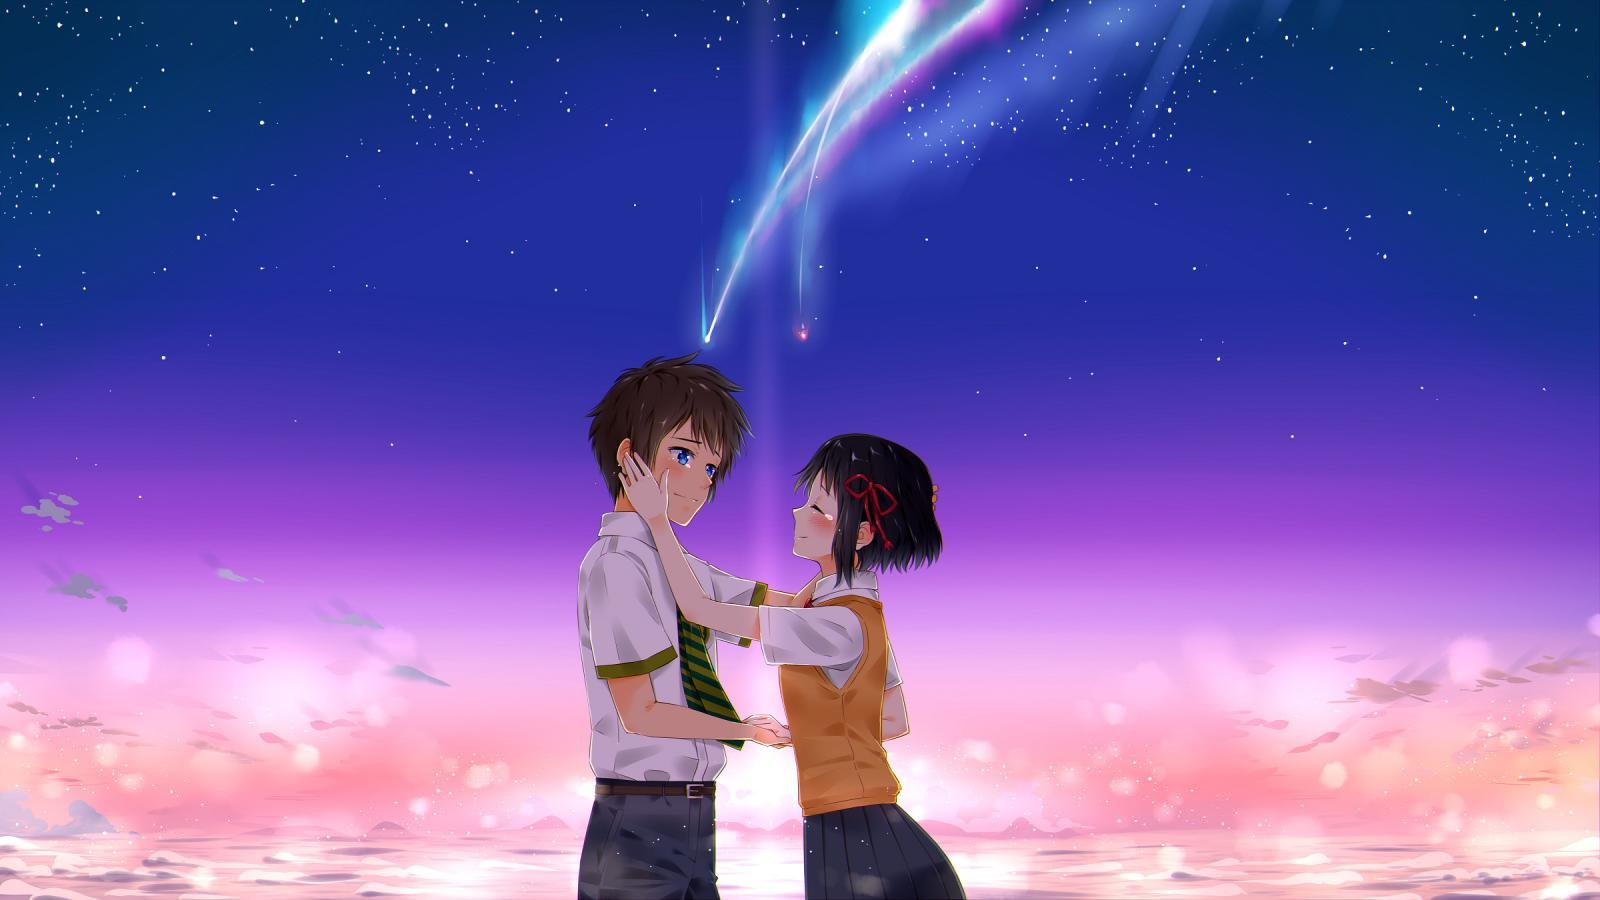 Your Name Wallpapers Desktop - Your Name , HD Wallpaper & Backgrounds